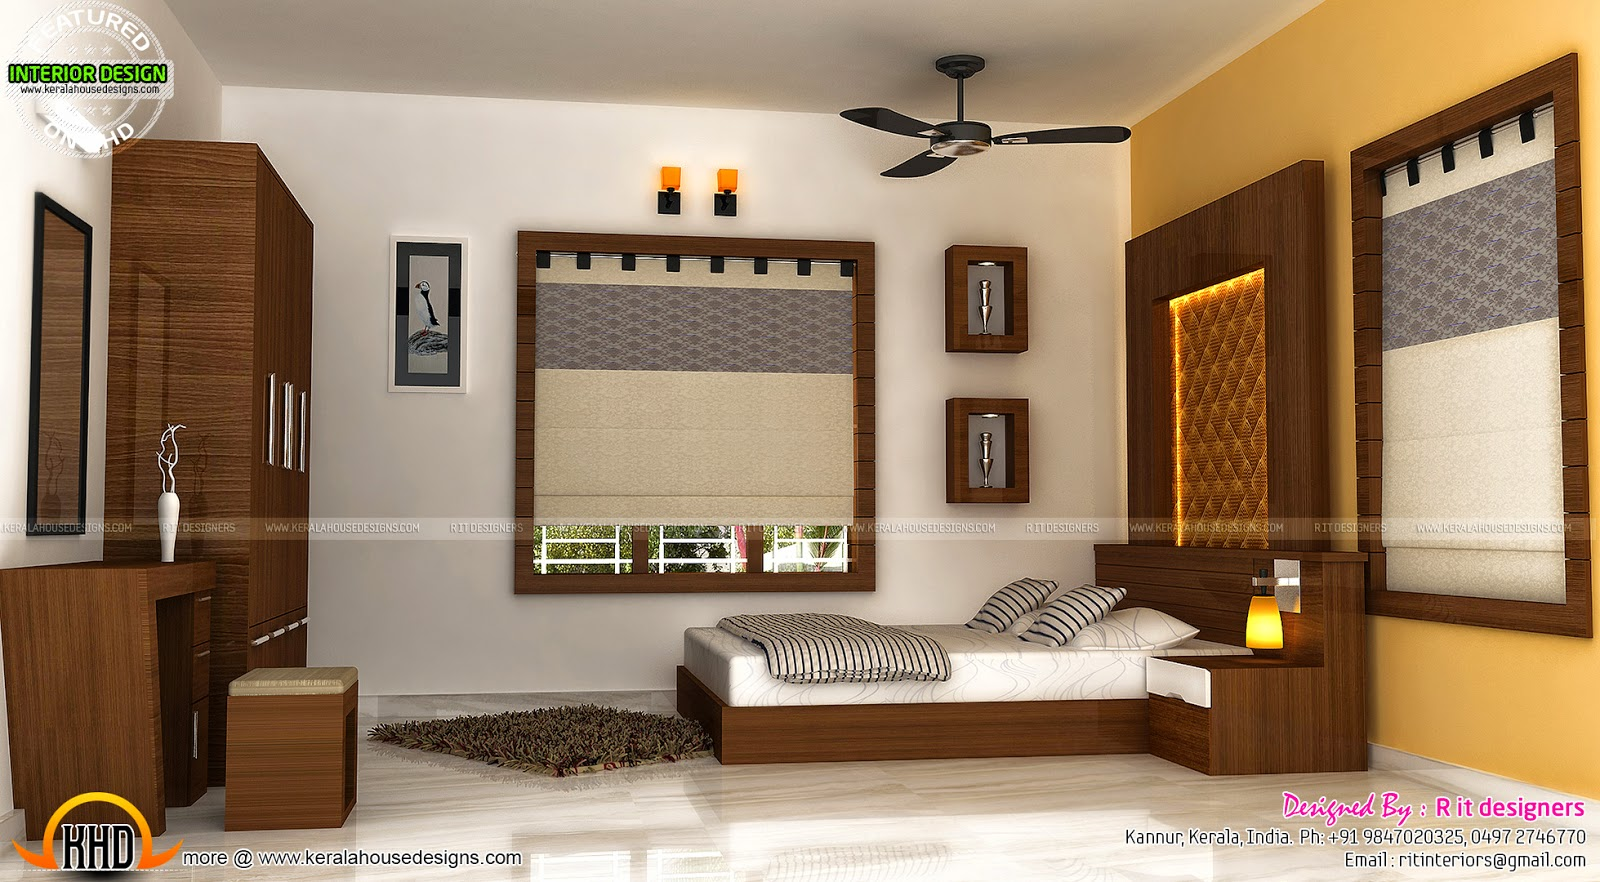 Staircase bedroom dining interiors kerala home design for Bathroom interior design kerala